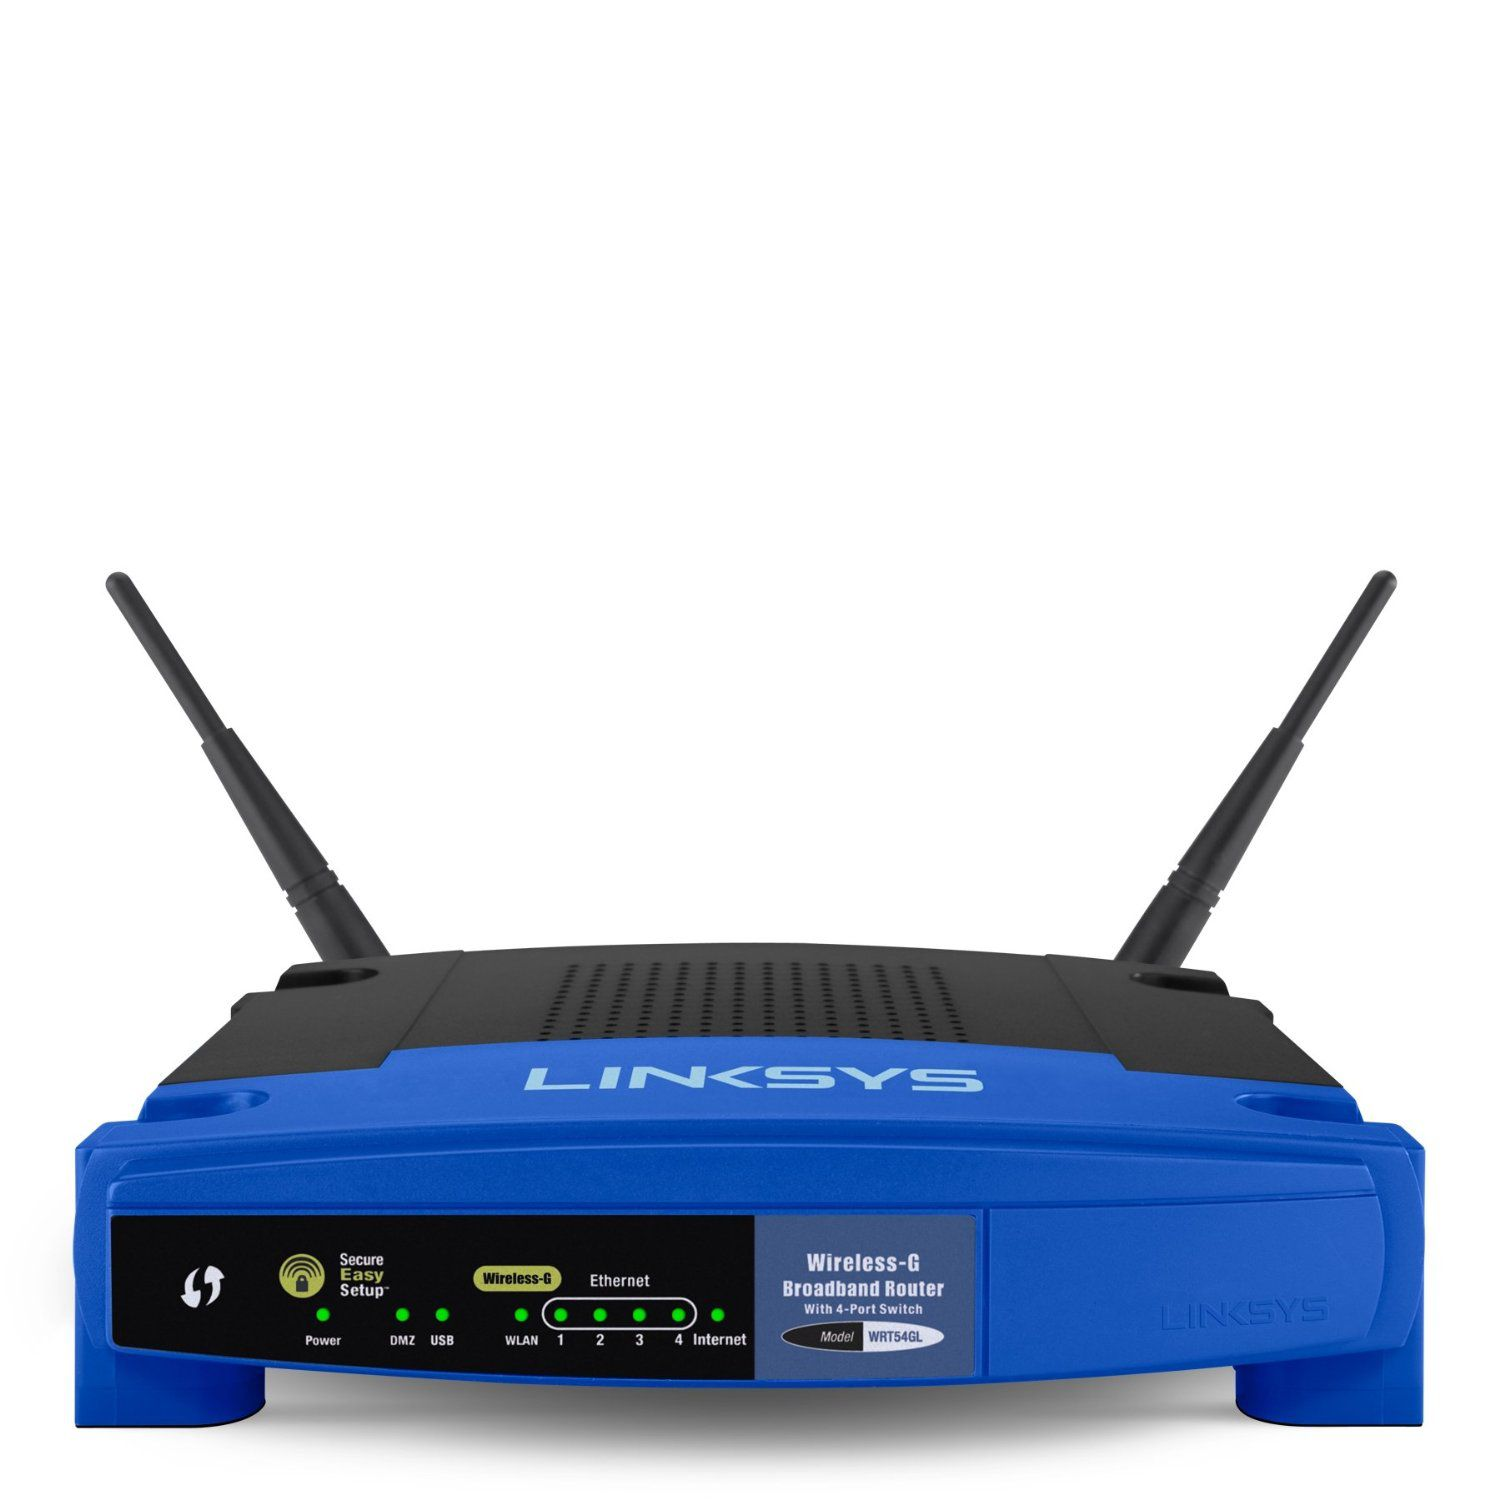 wireless equipment 101 - network routers, access points